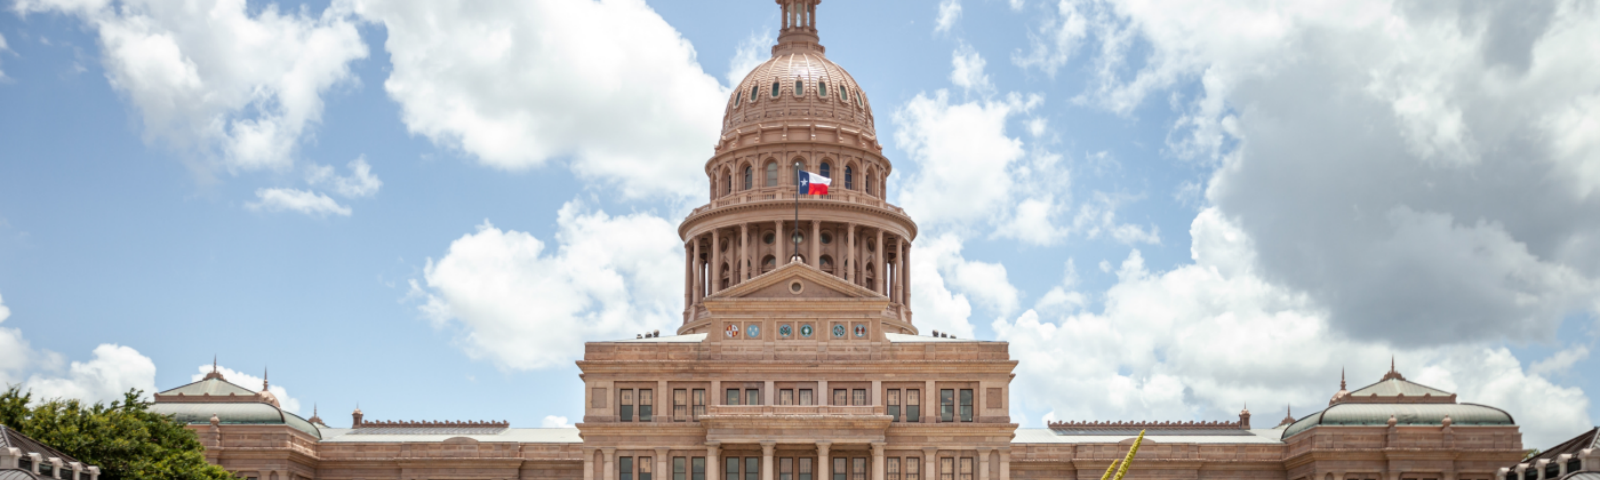 The Texas state capitol building in Austin